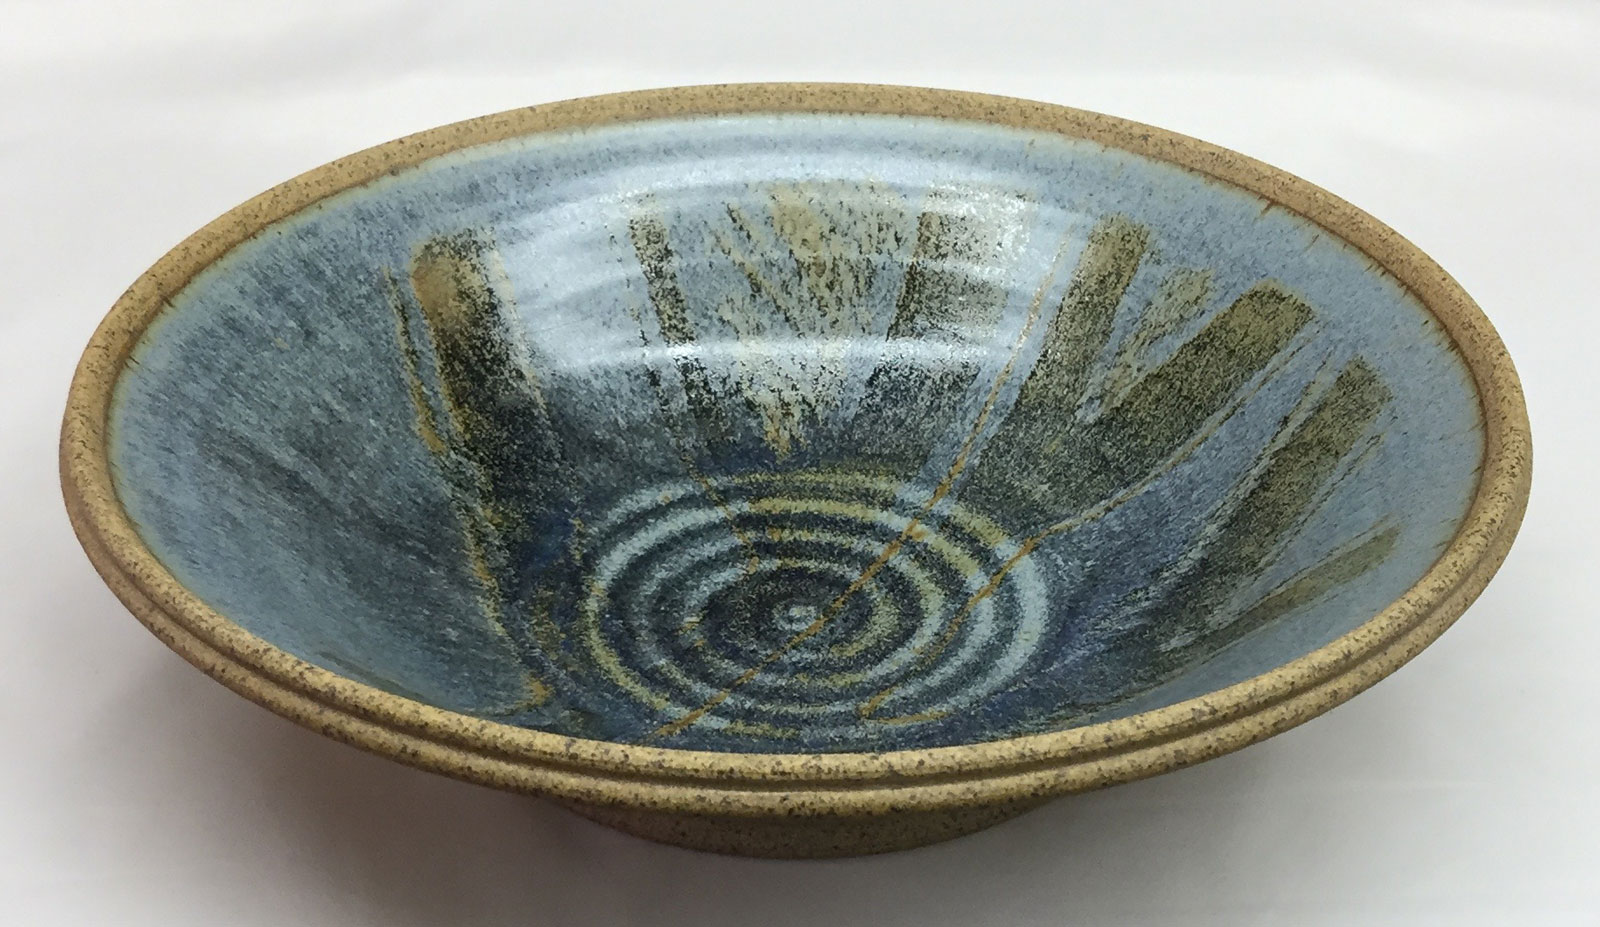 15 inch reduction fired bowl by Tony Hansen